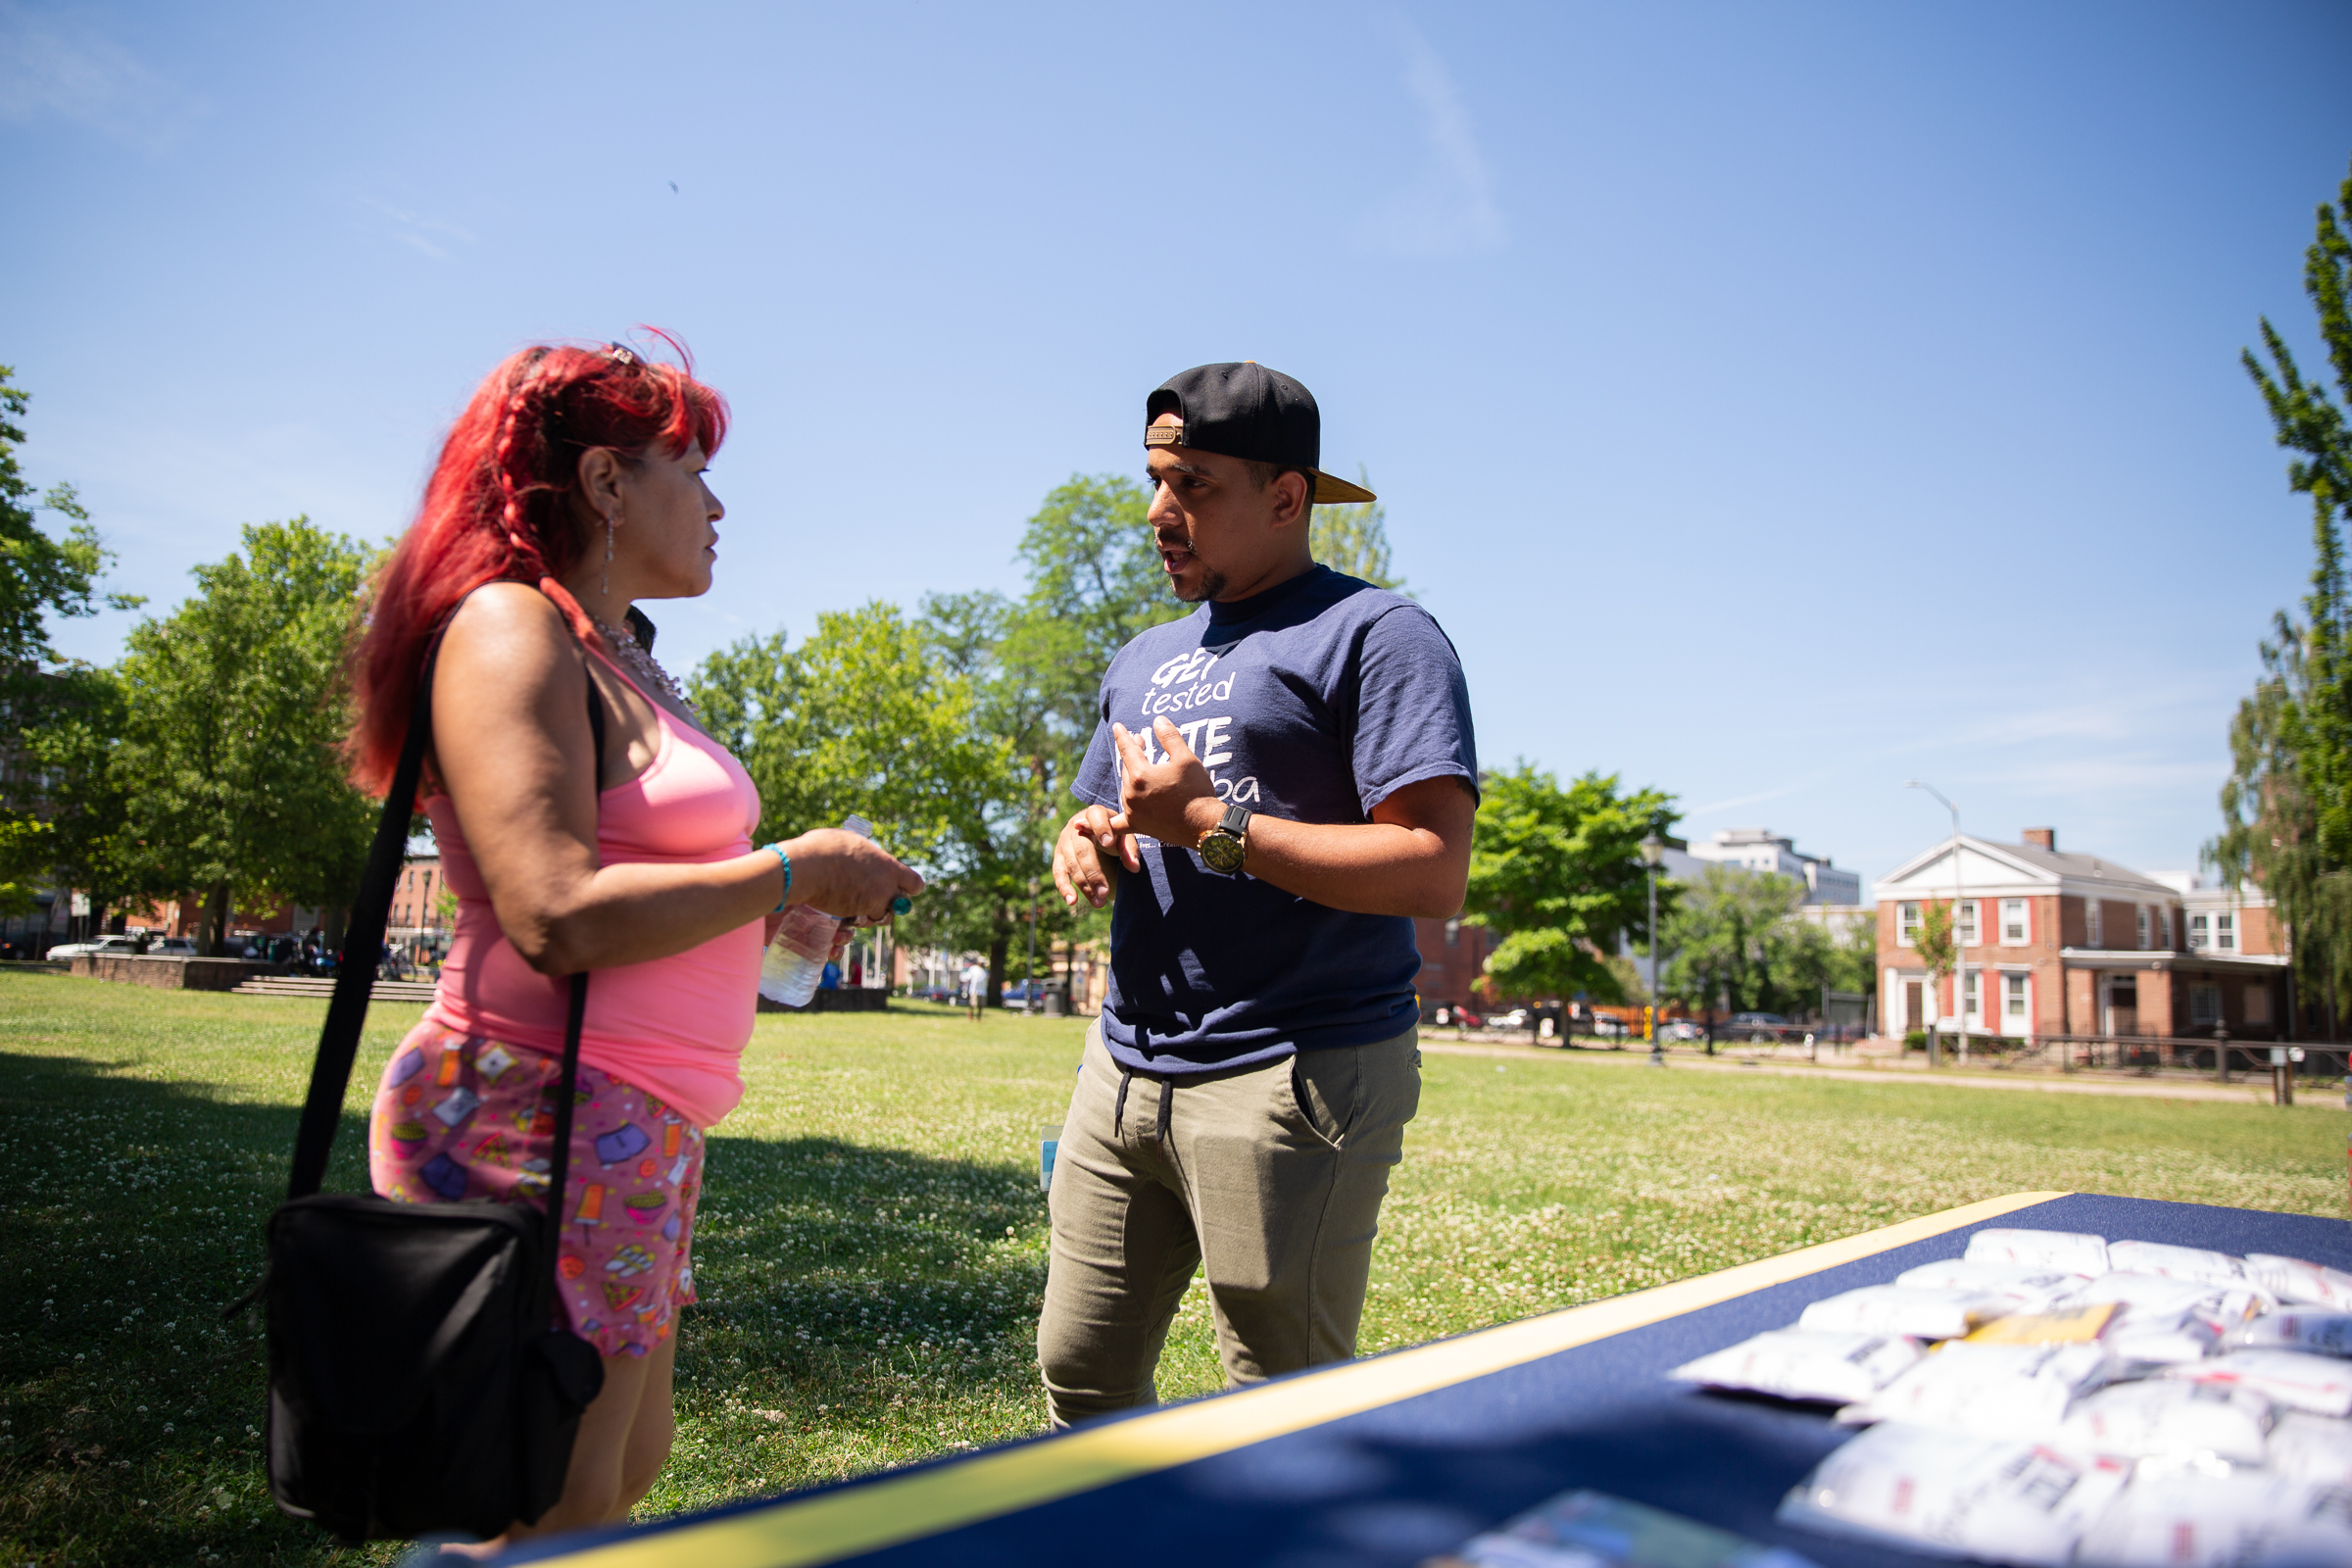 Community Renewal Team's Jovany Rolon speaks to Carmen Cruz about PrEP medication for HIV prevention in Hartford's Barnard Park. Photo by Ryan Caron King